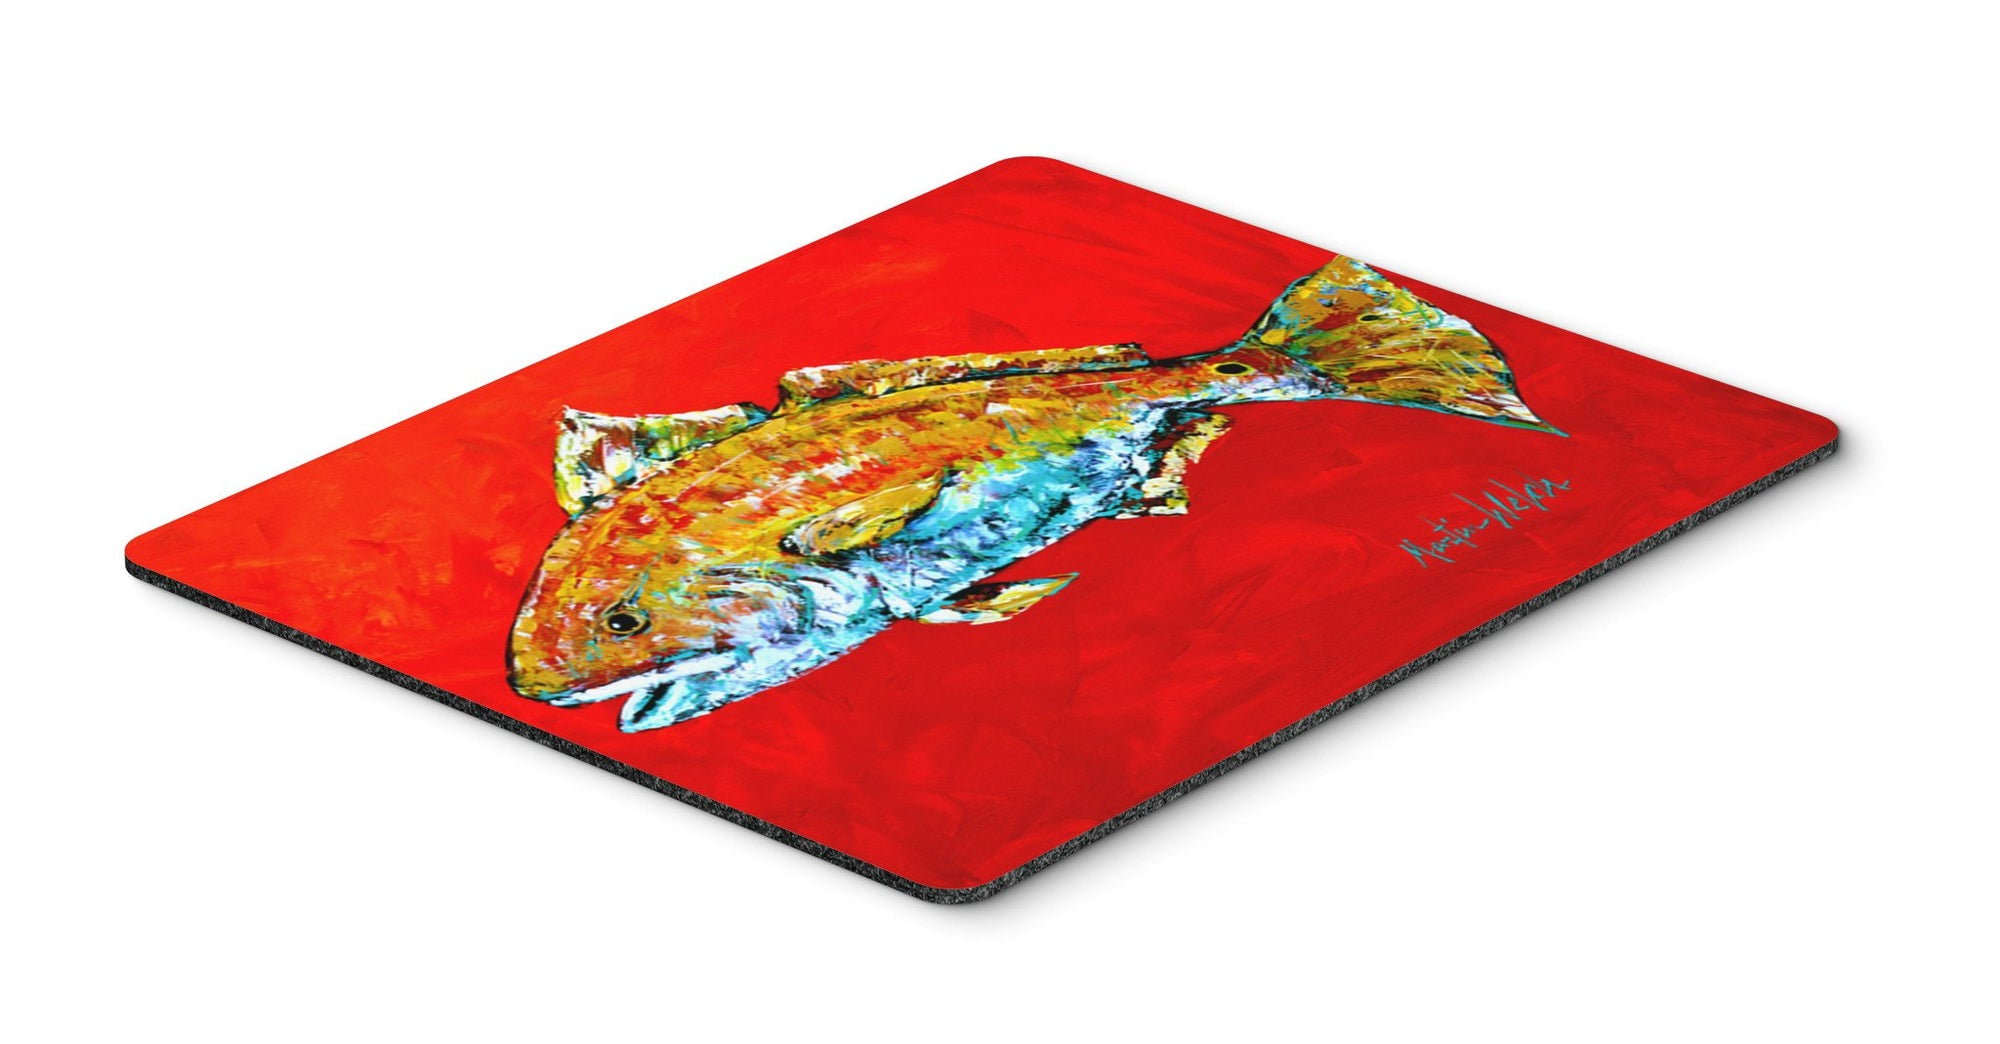 Fish - Red Fish Red Head Mouse Pad, Hot Pad or Trivet by Caroline's Treasures